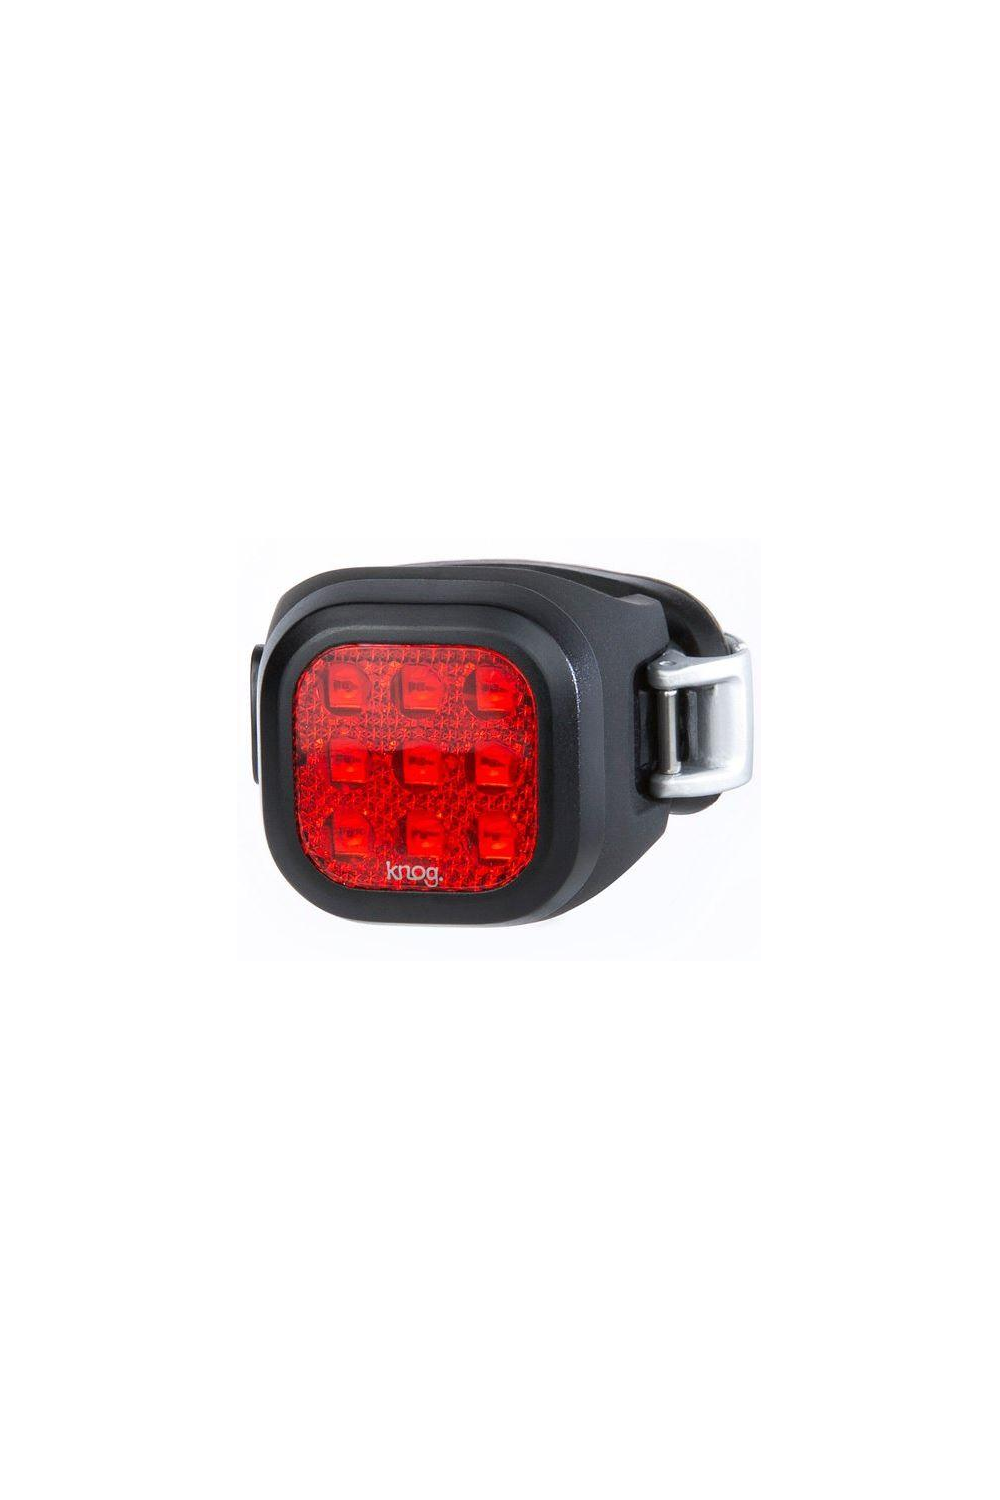 LIGHT KNOG BLINDER MINI, NINER, BLACK, REAR